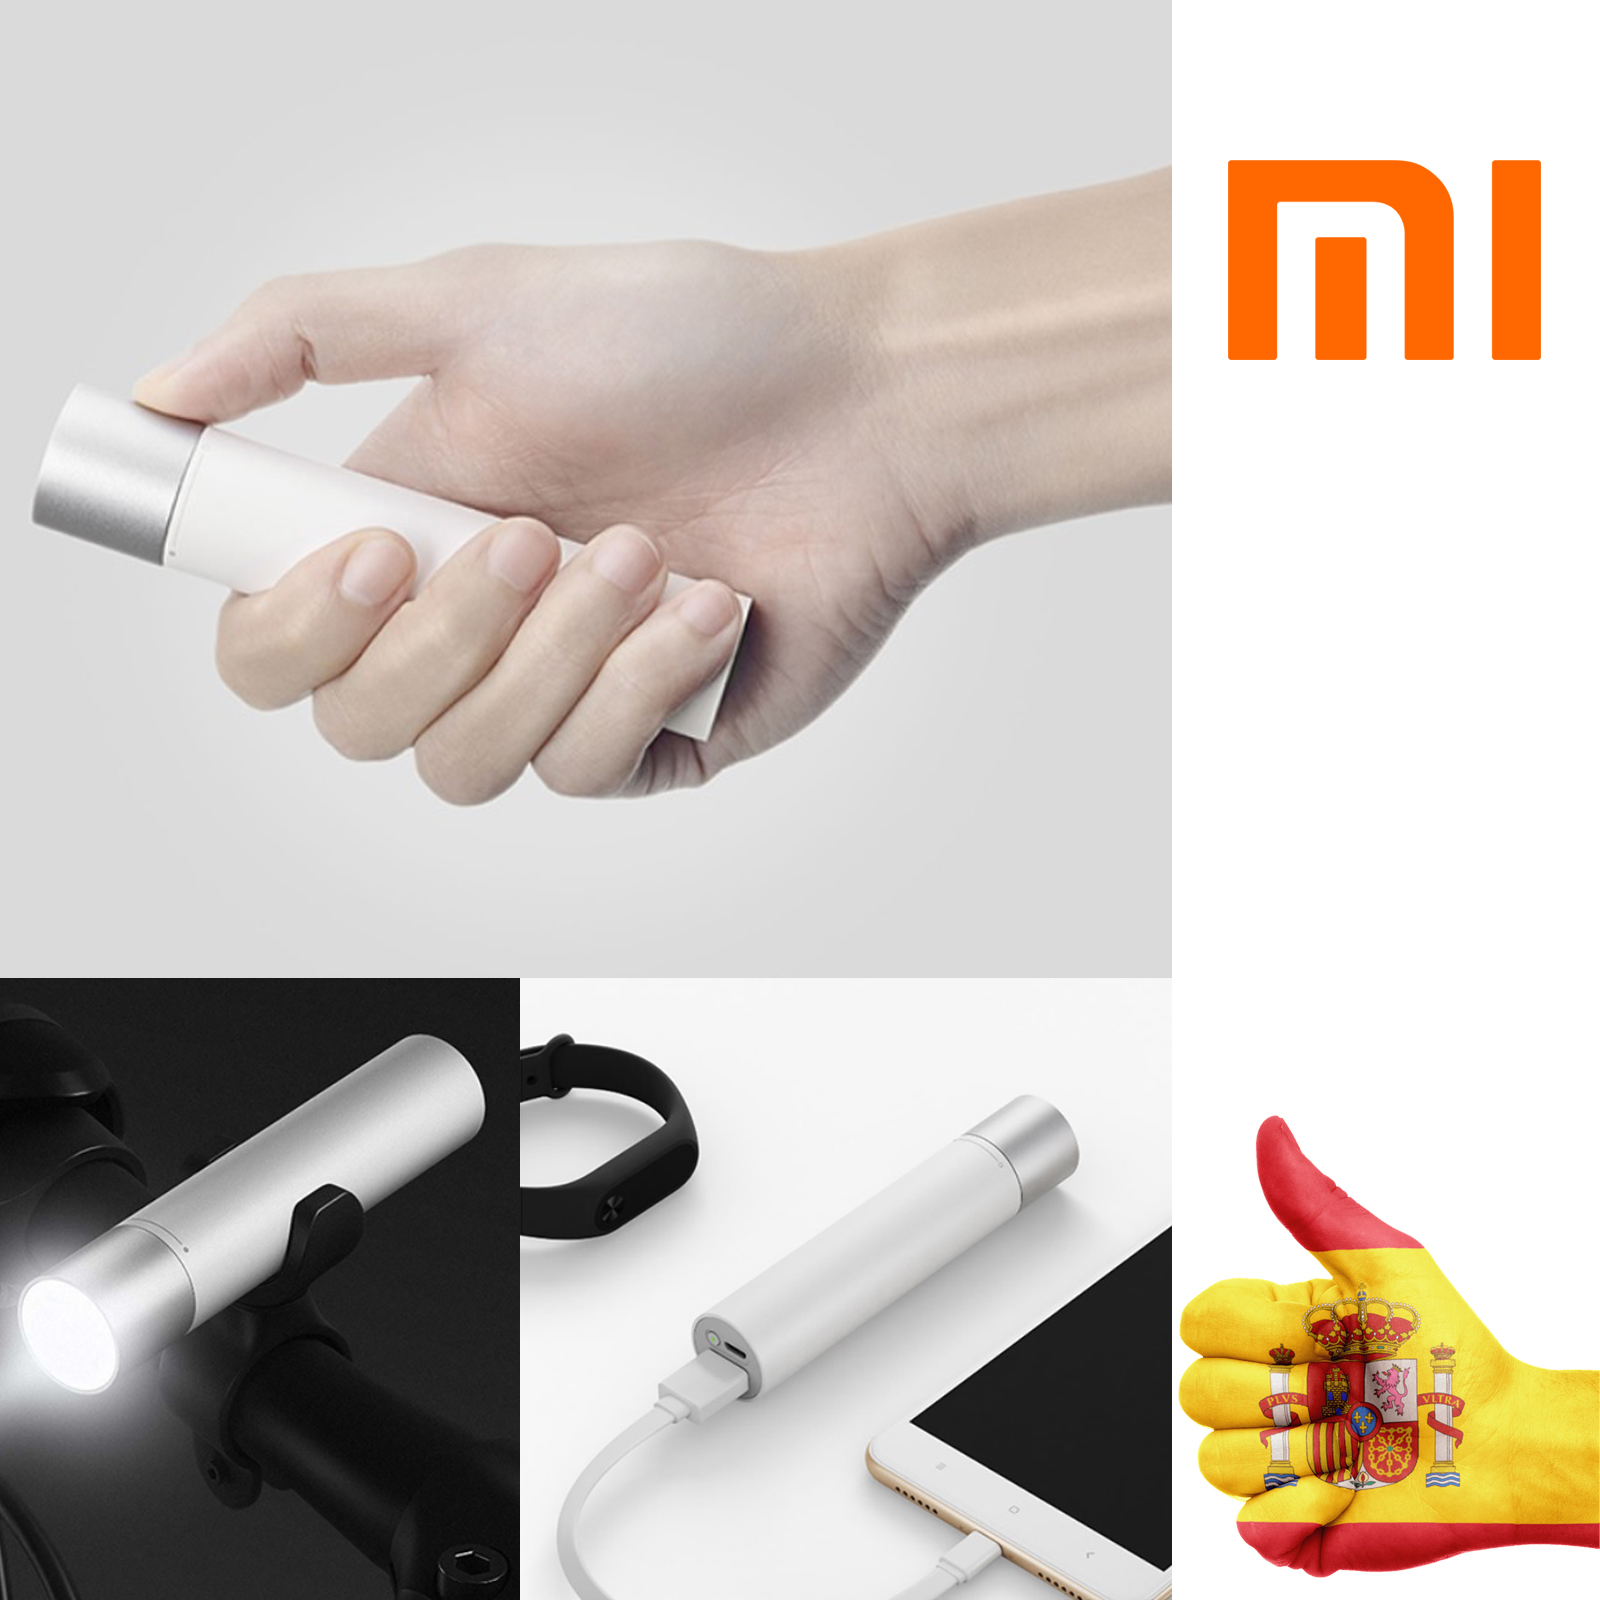 POWER BANK FLASHLIGHT MI X I A OR M I 3250 MAH CHARGER for MOBILE LANTERN COMPATIBLE WITH IOS ANDROID